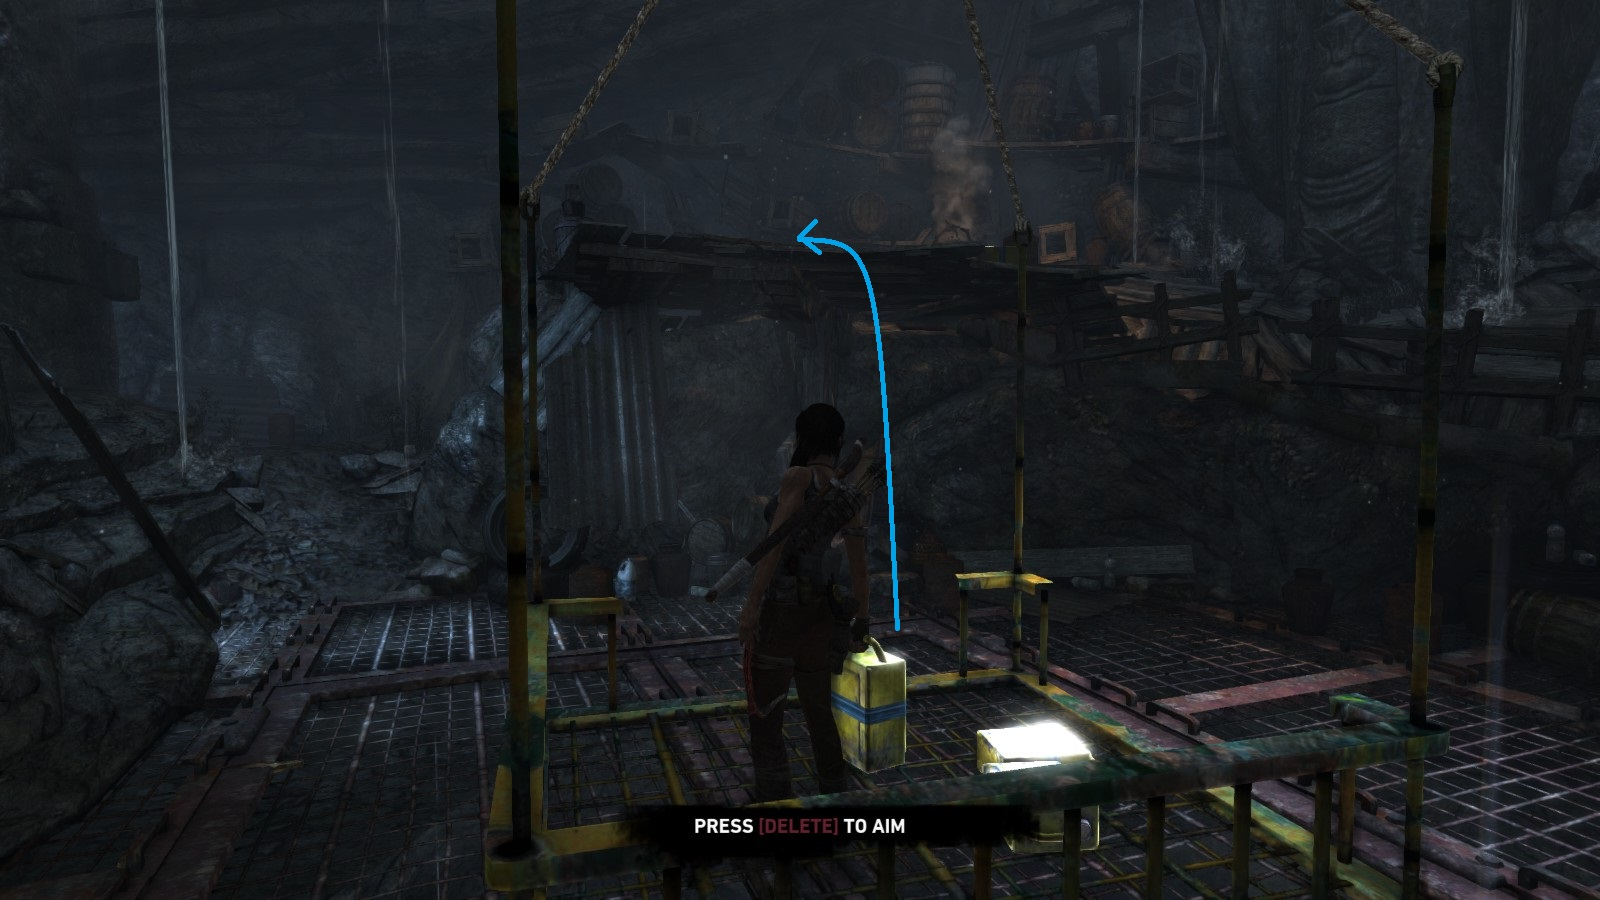 Tomb Raider: Complete All Optional Tombs image 62